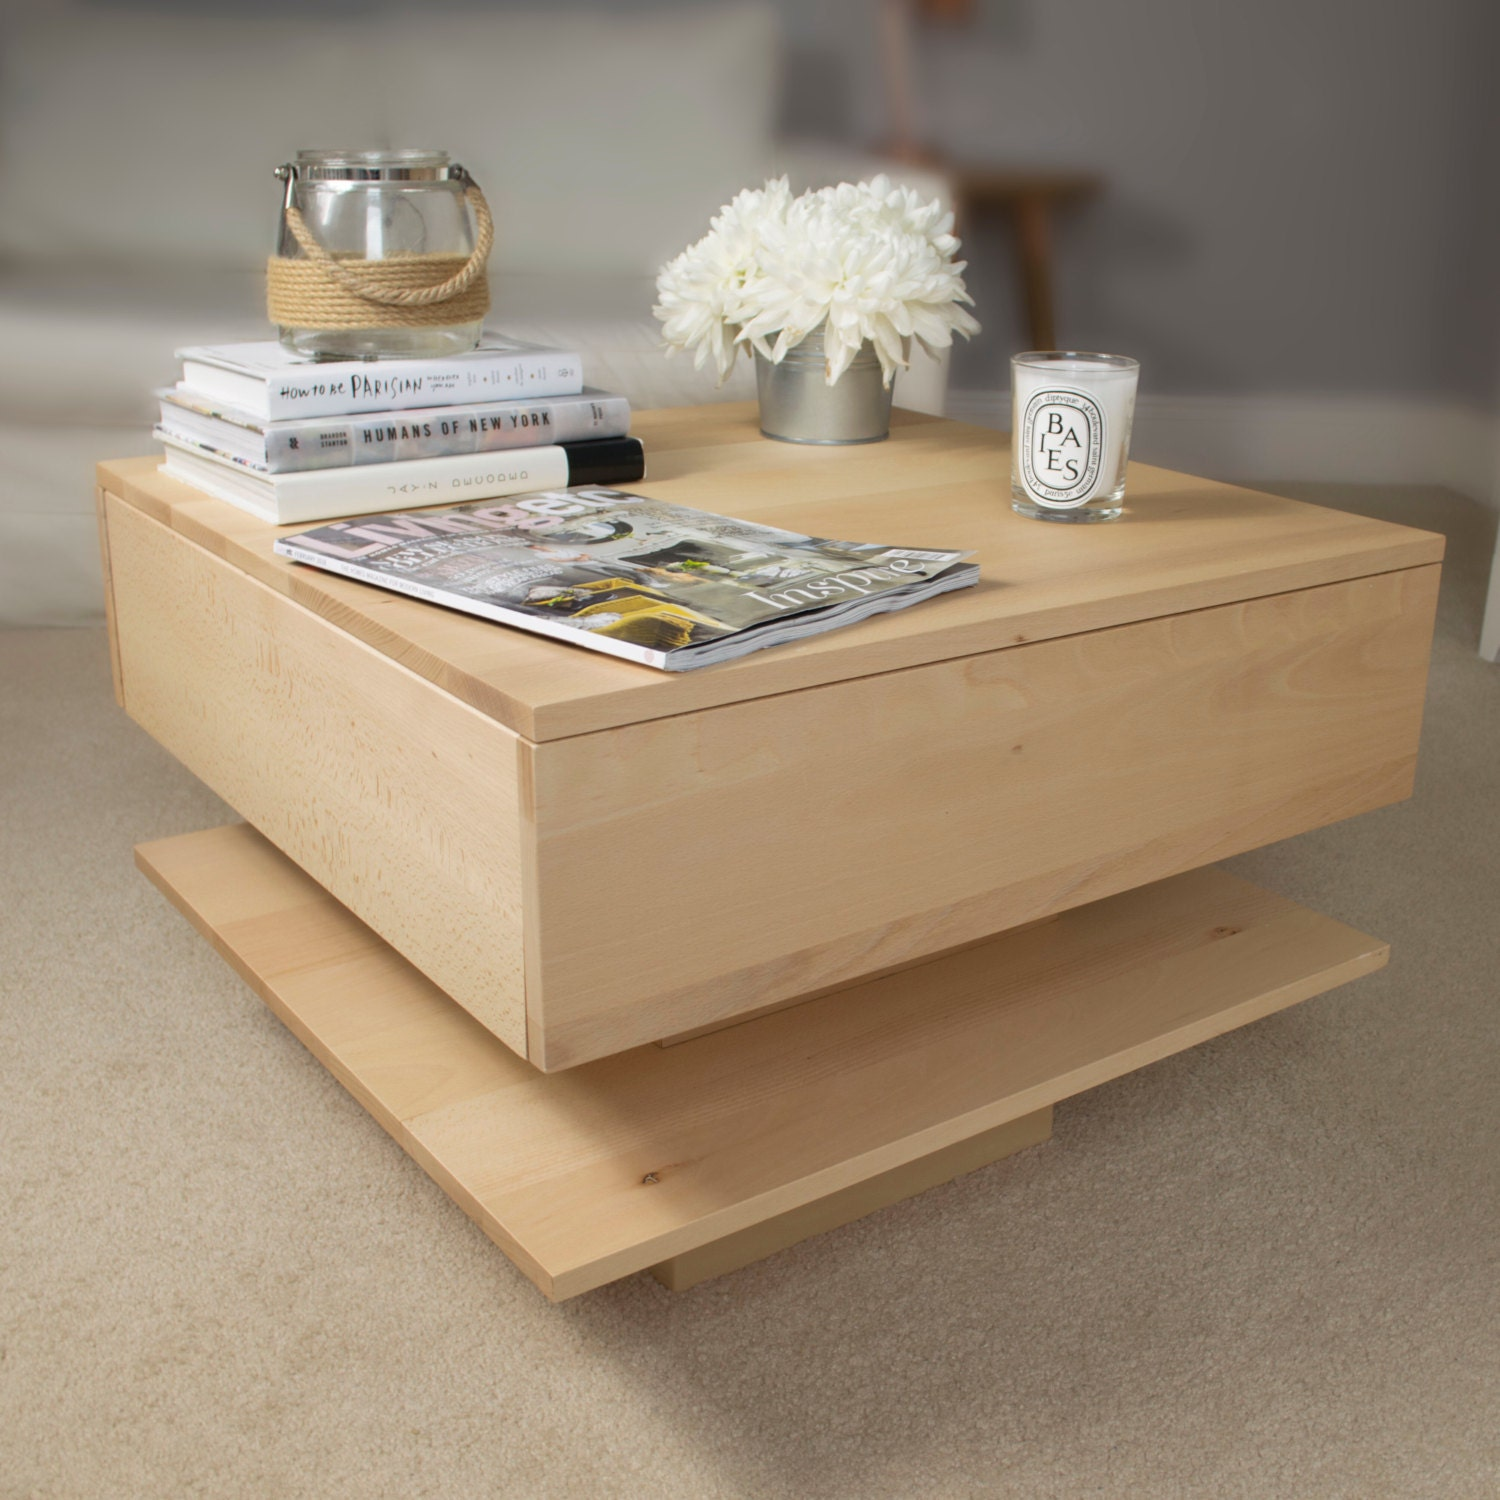 Floating Coffee Table With Shelf By Urbansize On Etsy